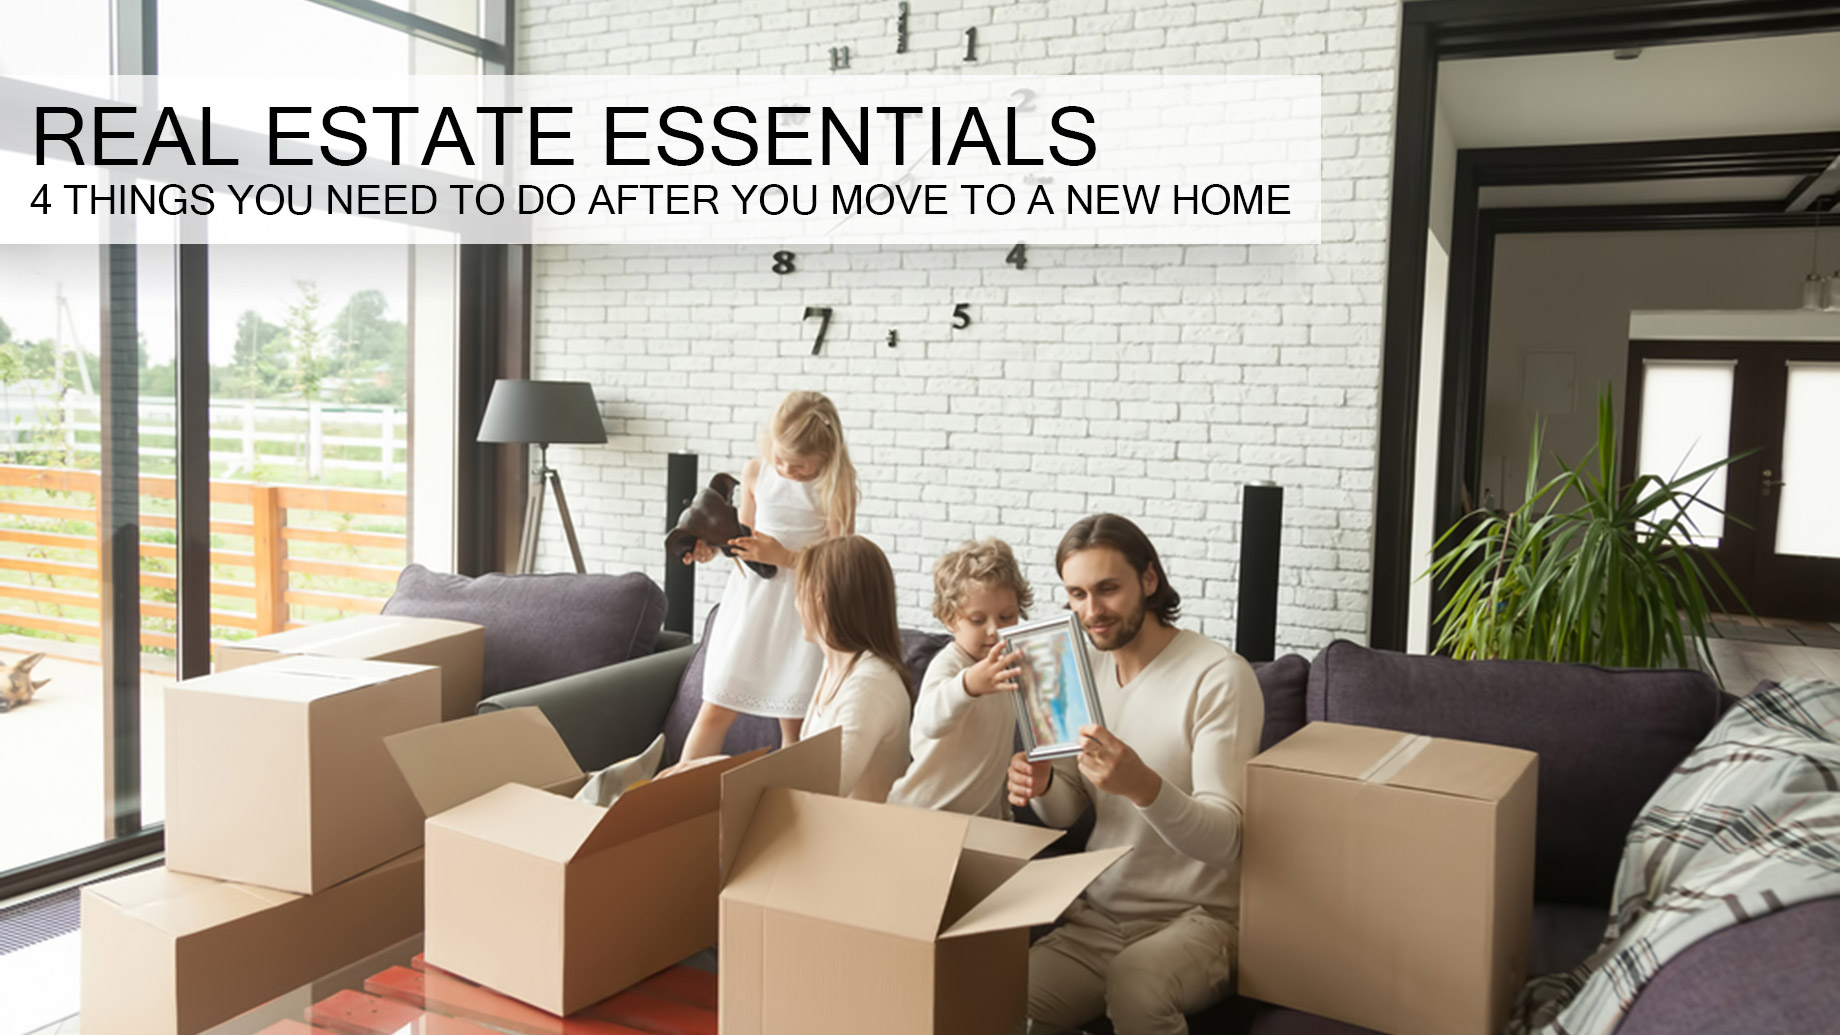 Real Estate Essentials - 4 Things You Need to Do After You Move to a New Home